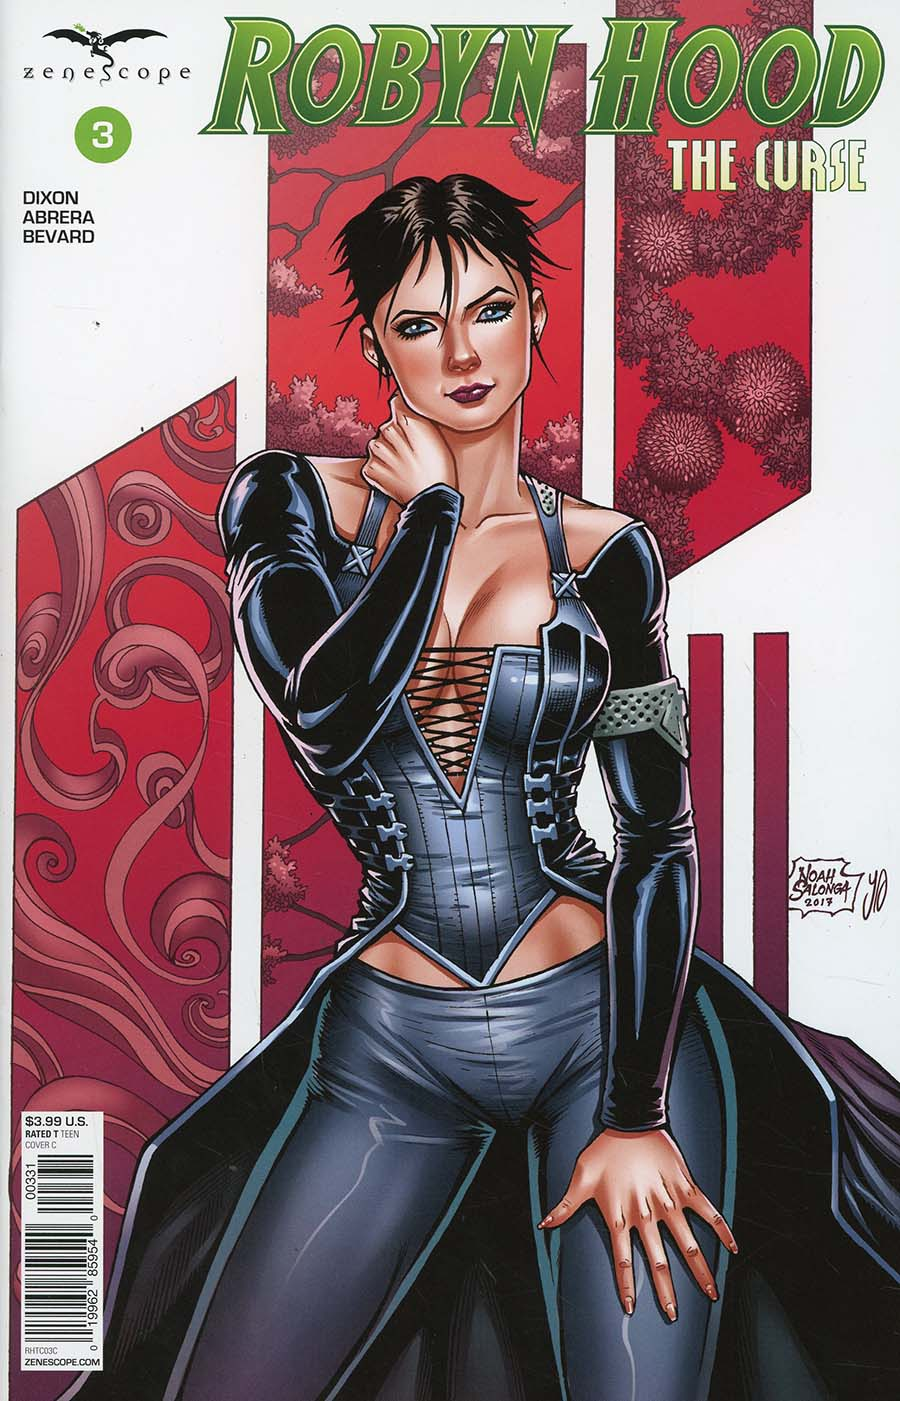 Grimm Fairy Tales Presents Robyn Hood The Curse #3 Cover C Noah Salonga